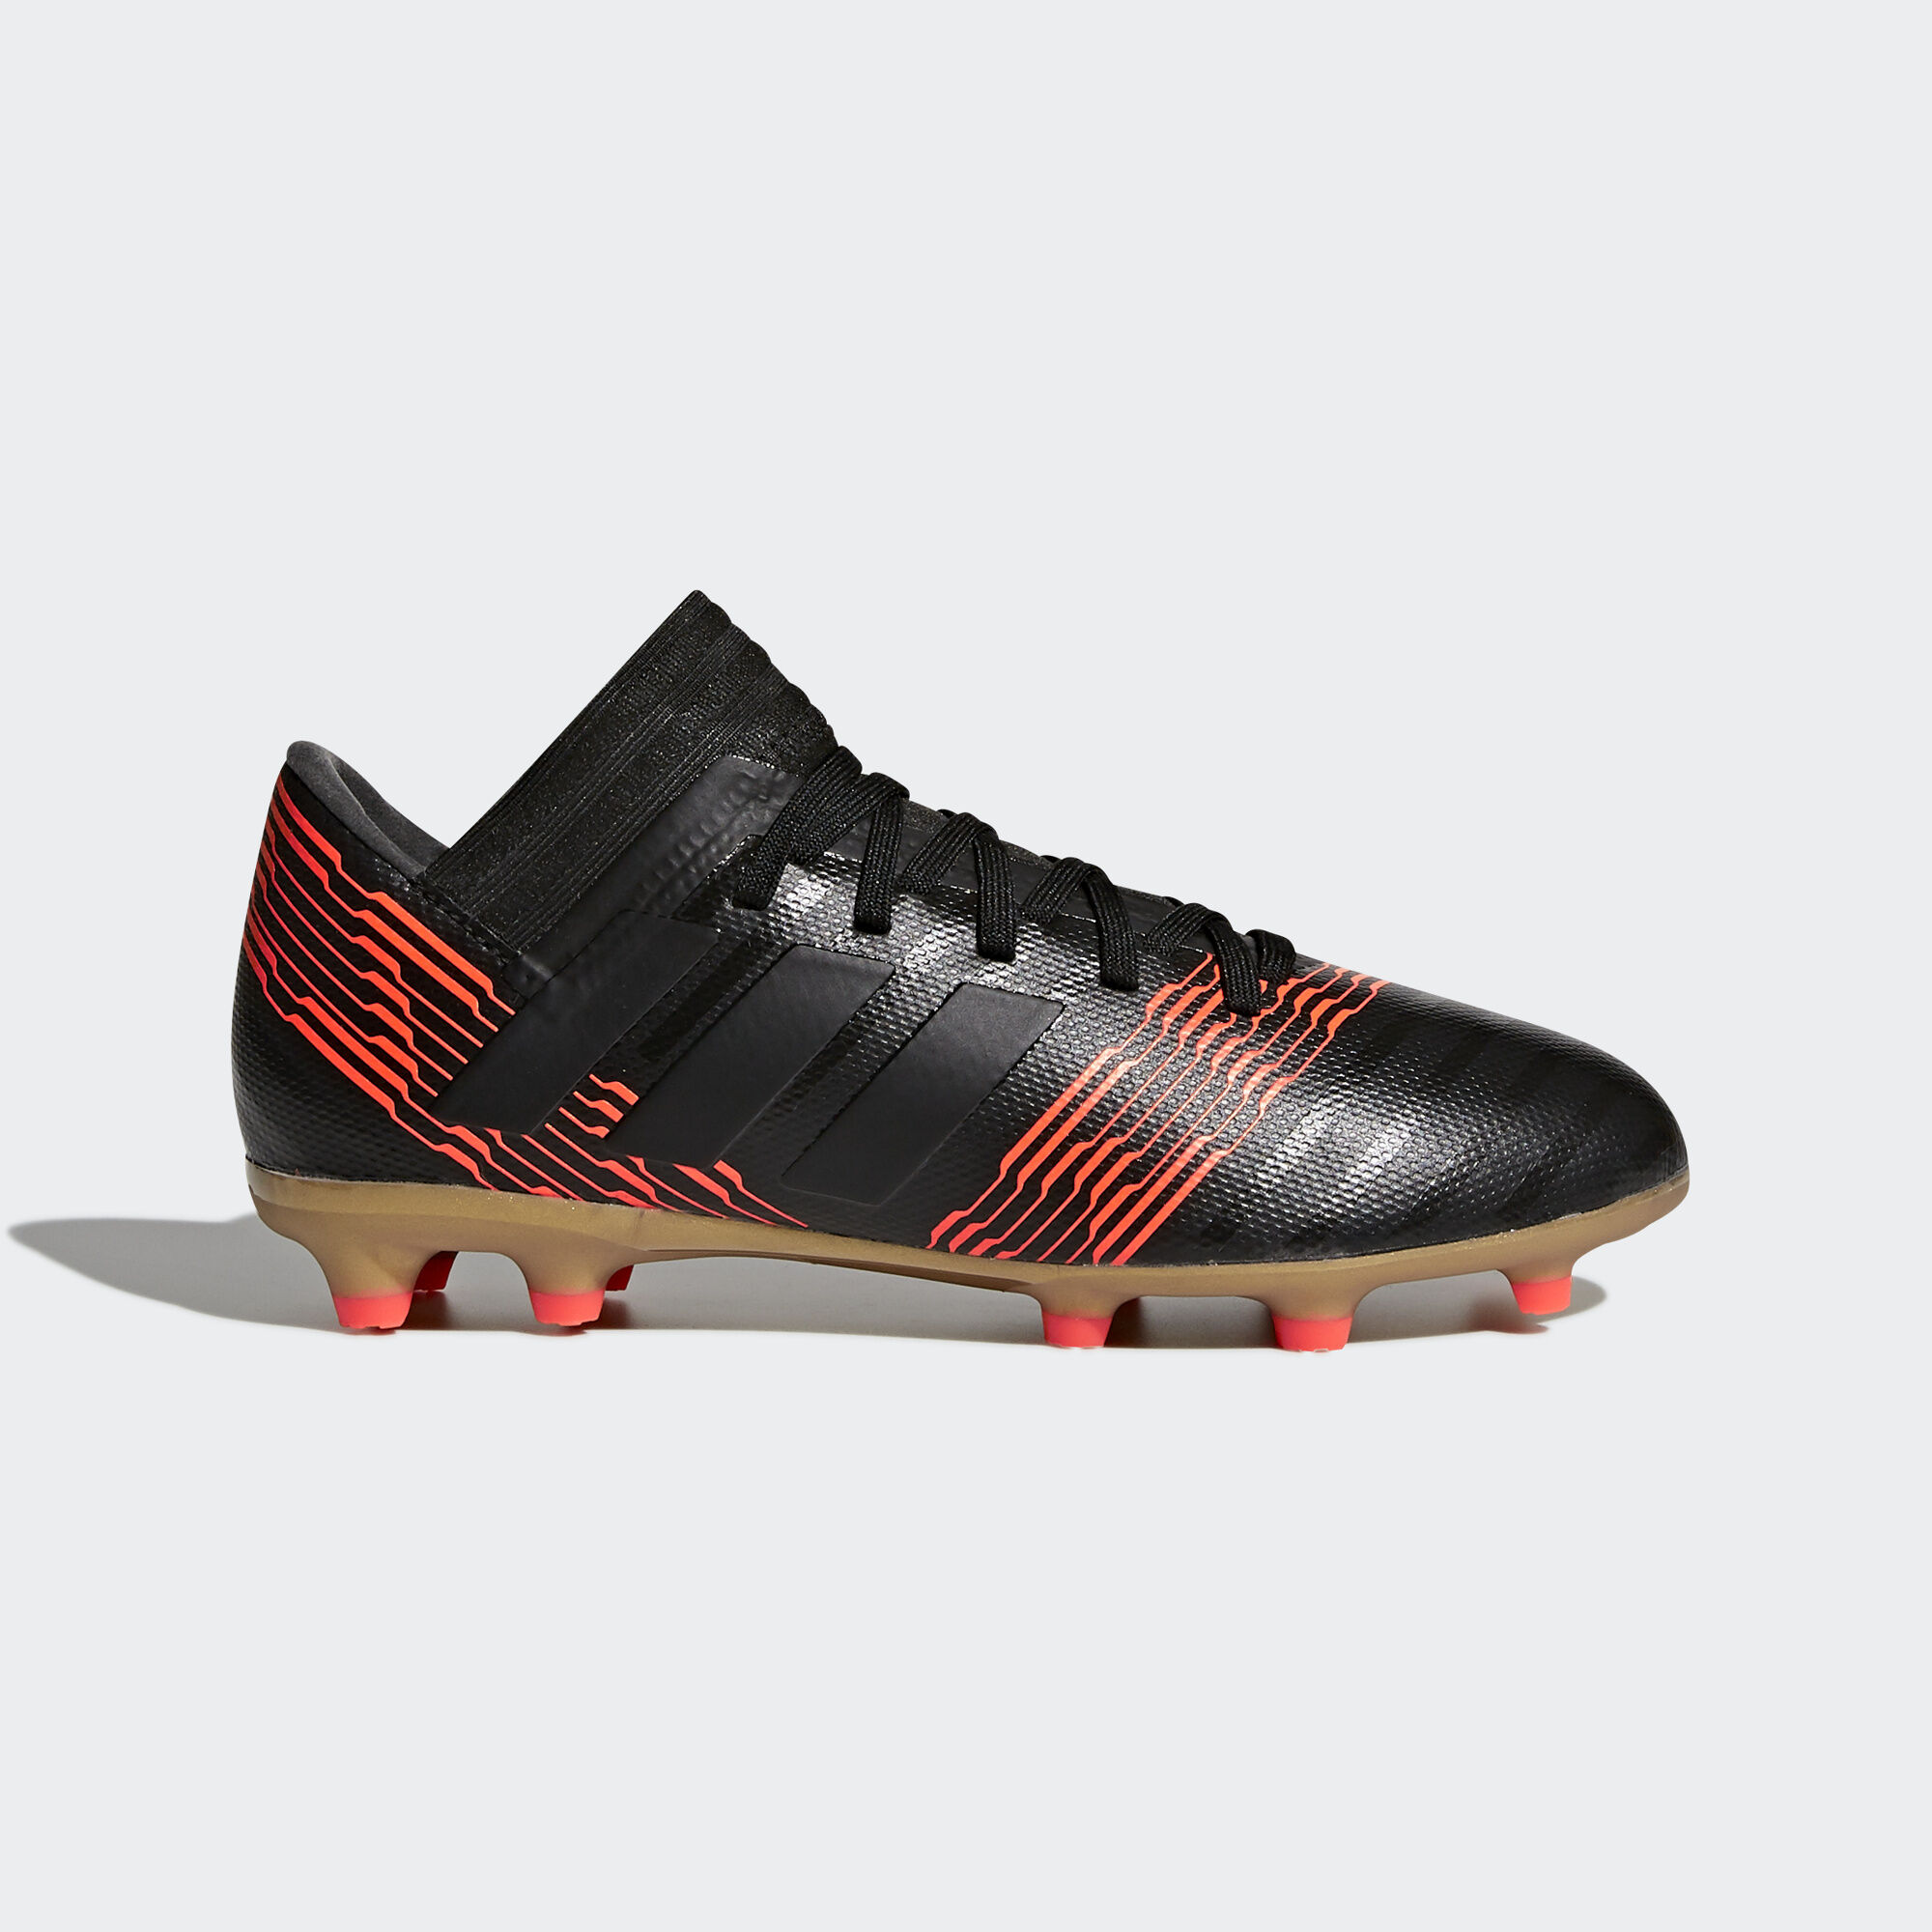 3cc95a52507a ... adidas nemeziz 17.3 firm ground boots core black core black solar red  cp9165